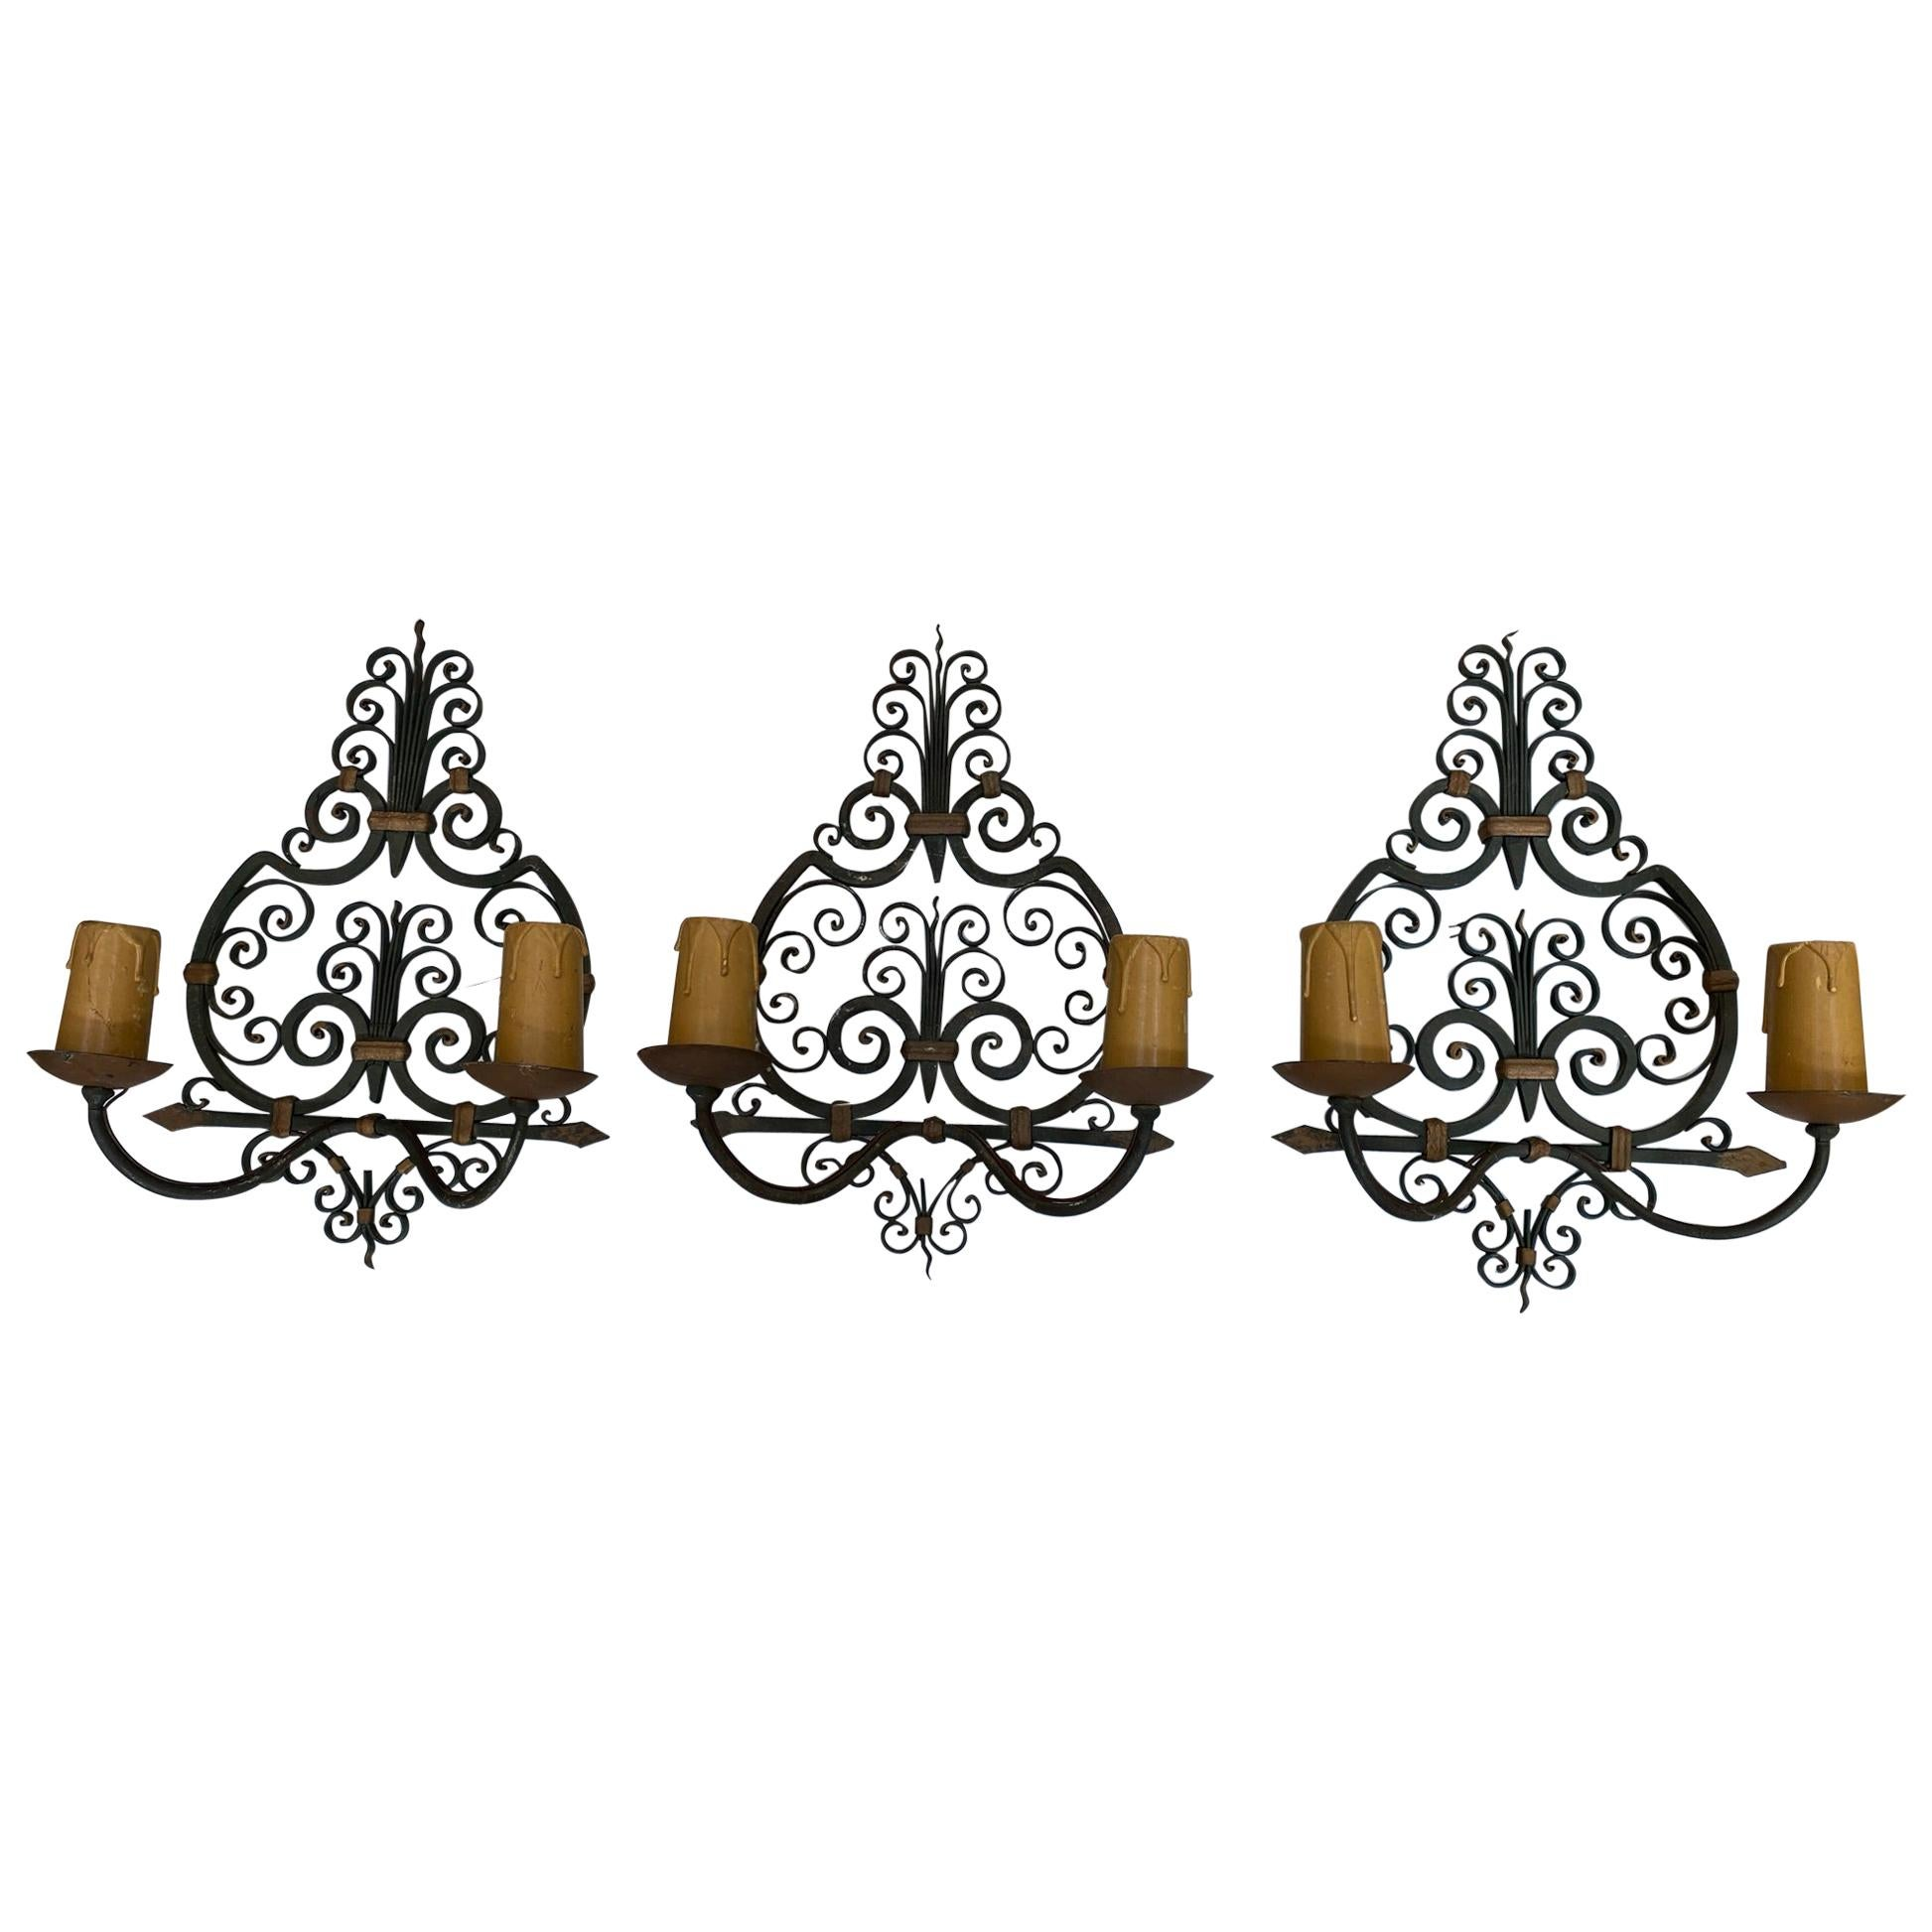 3 Wrought Iron, Art Deco Wall Sconces, French, 1940s